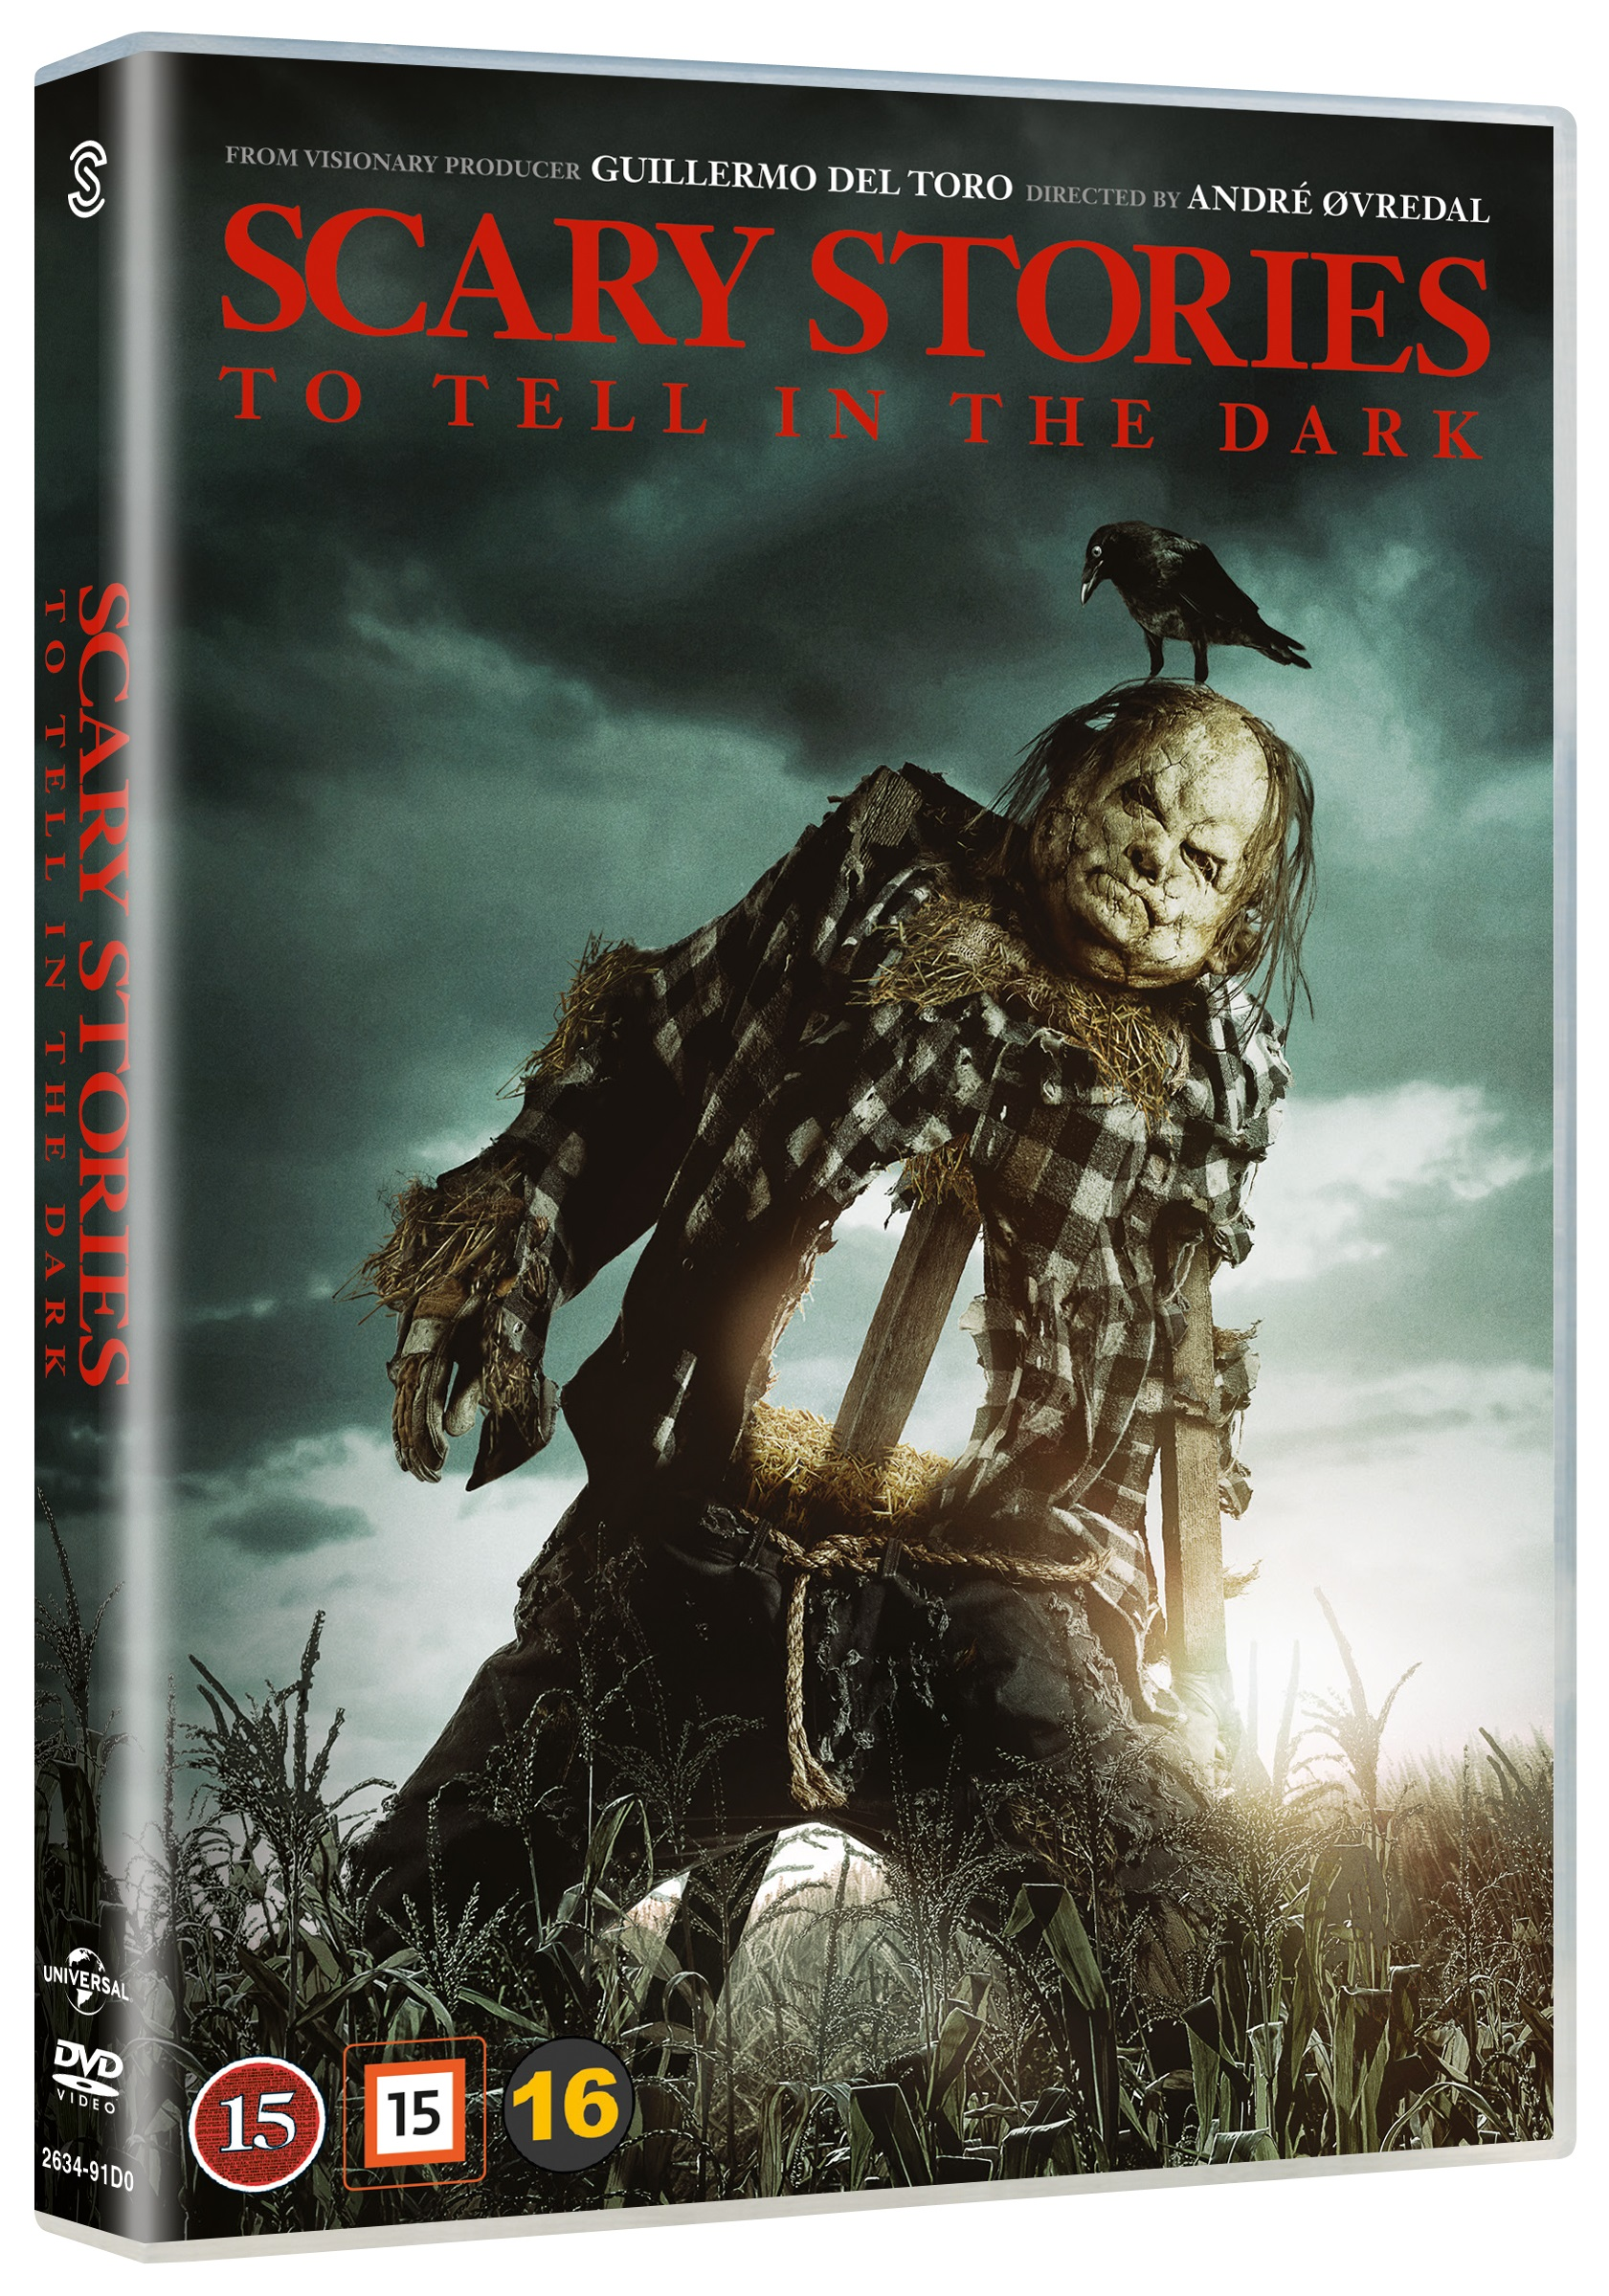 Scary Stories to Tell in the Dark -  - Film -  - 5706169002095 - 12/12-2019